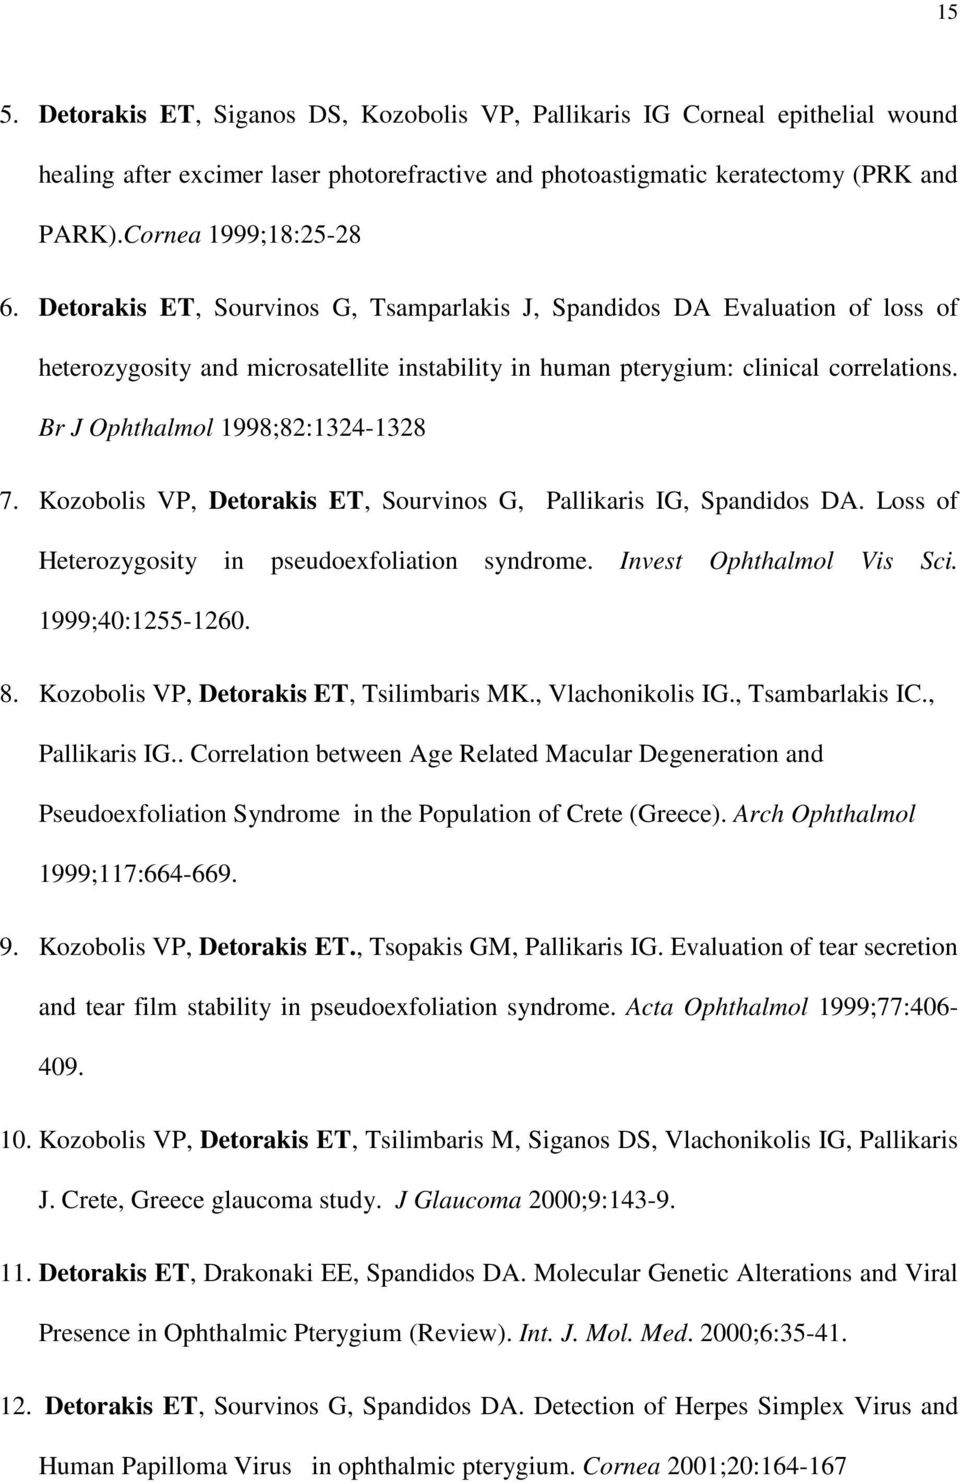 Br J Ophthalmol 1998;82:1324-1328 7. Kozobolis VP, Detorakis ET, Sourvinos G, Pallikaris IG, Spandidos DA. Loss of Heterozygosity in pseudoexfoliation syndrome. Invest Ophthalmol Vis Sci.